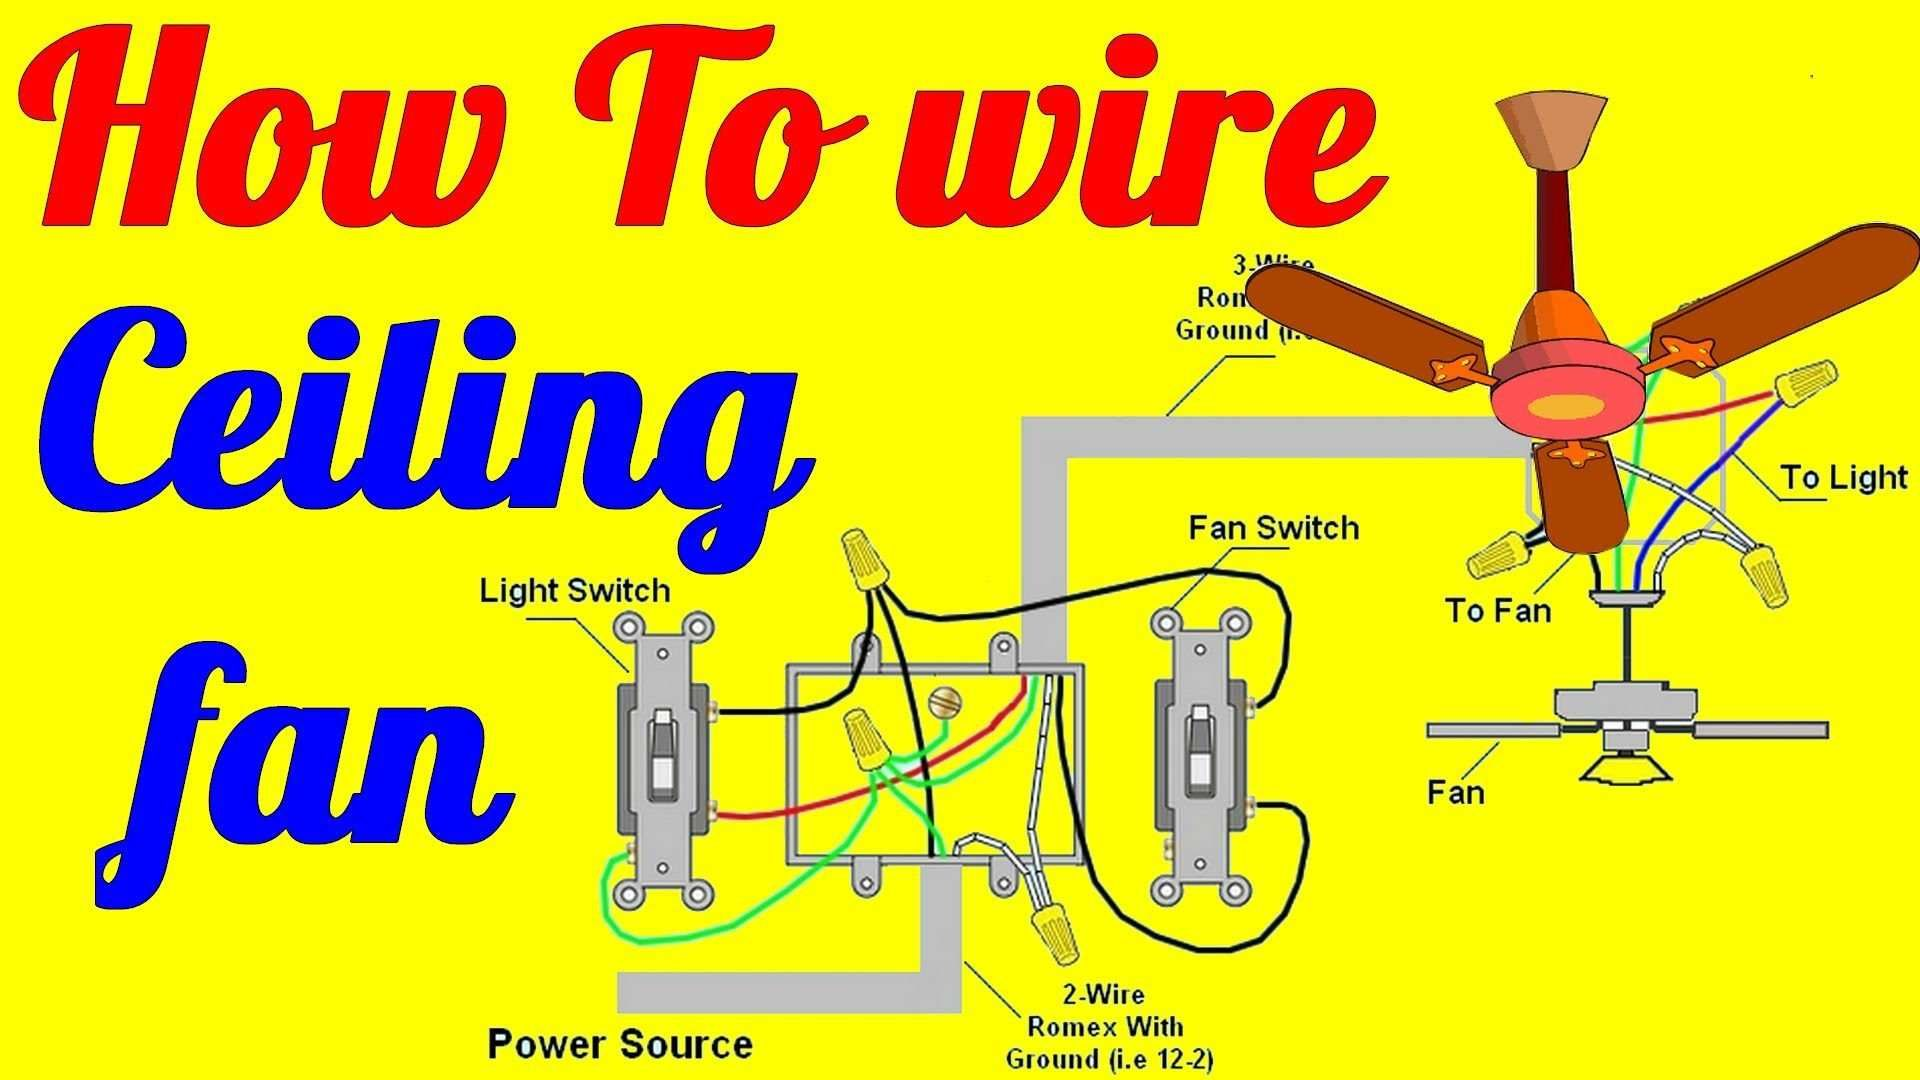 small resolution of wiring diagram for hunter ceiling fan with light elegant how to wire ceiling fan with light switch youtube harboreze wiring